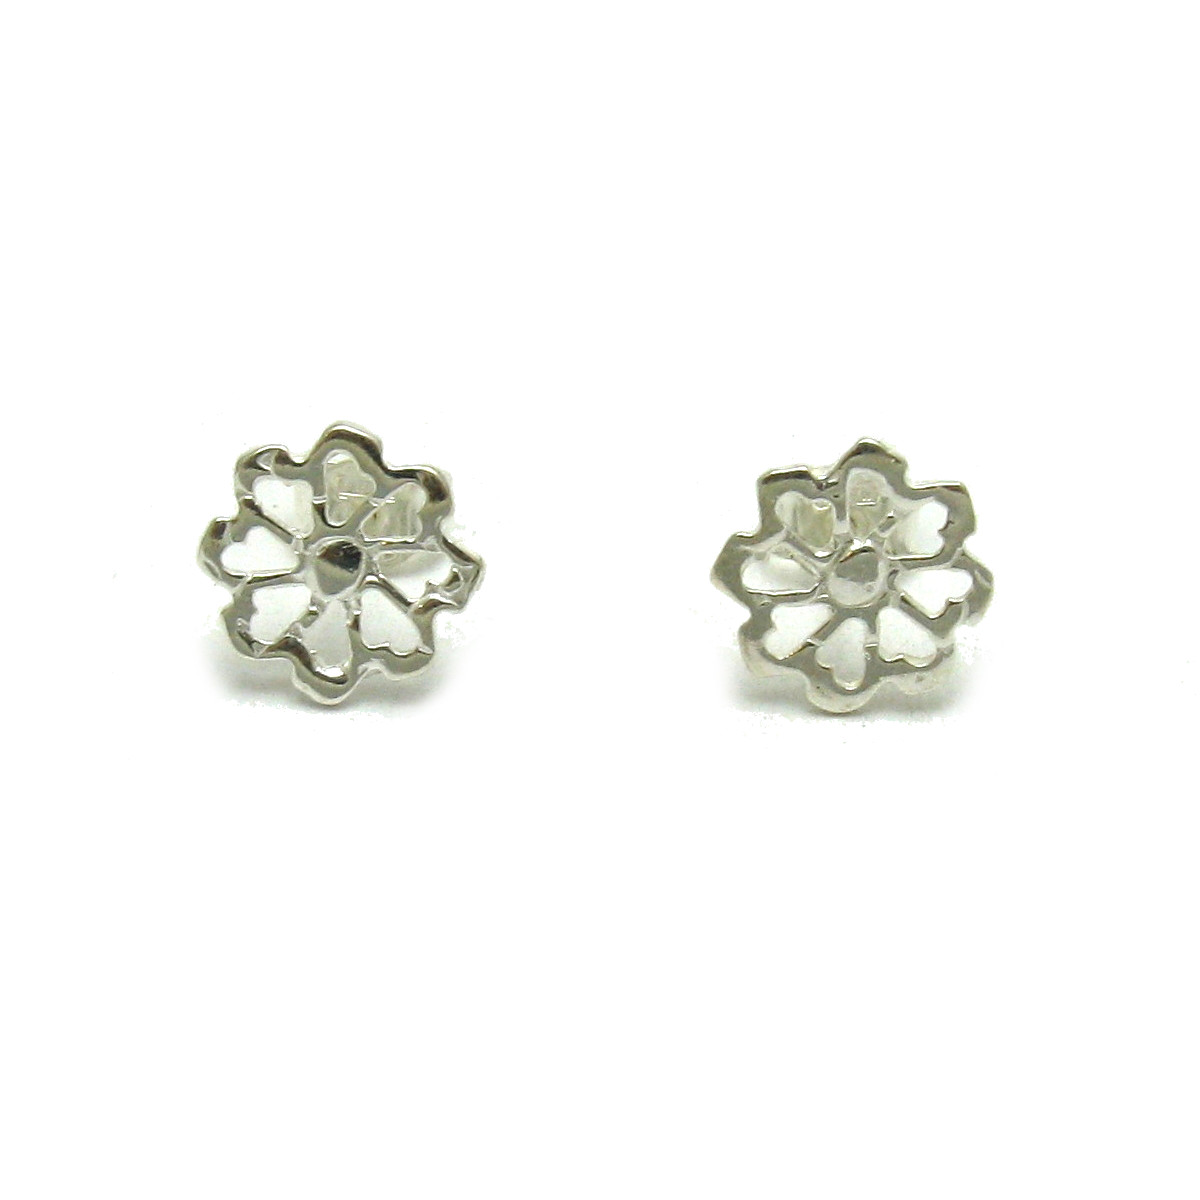 Silver earrings - E000661